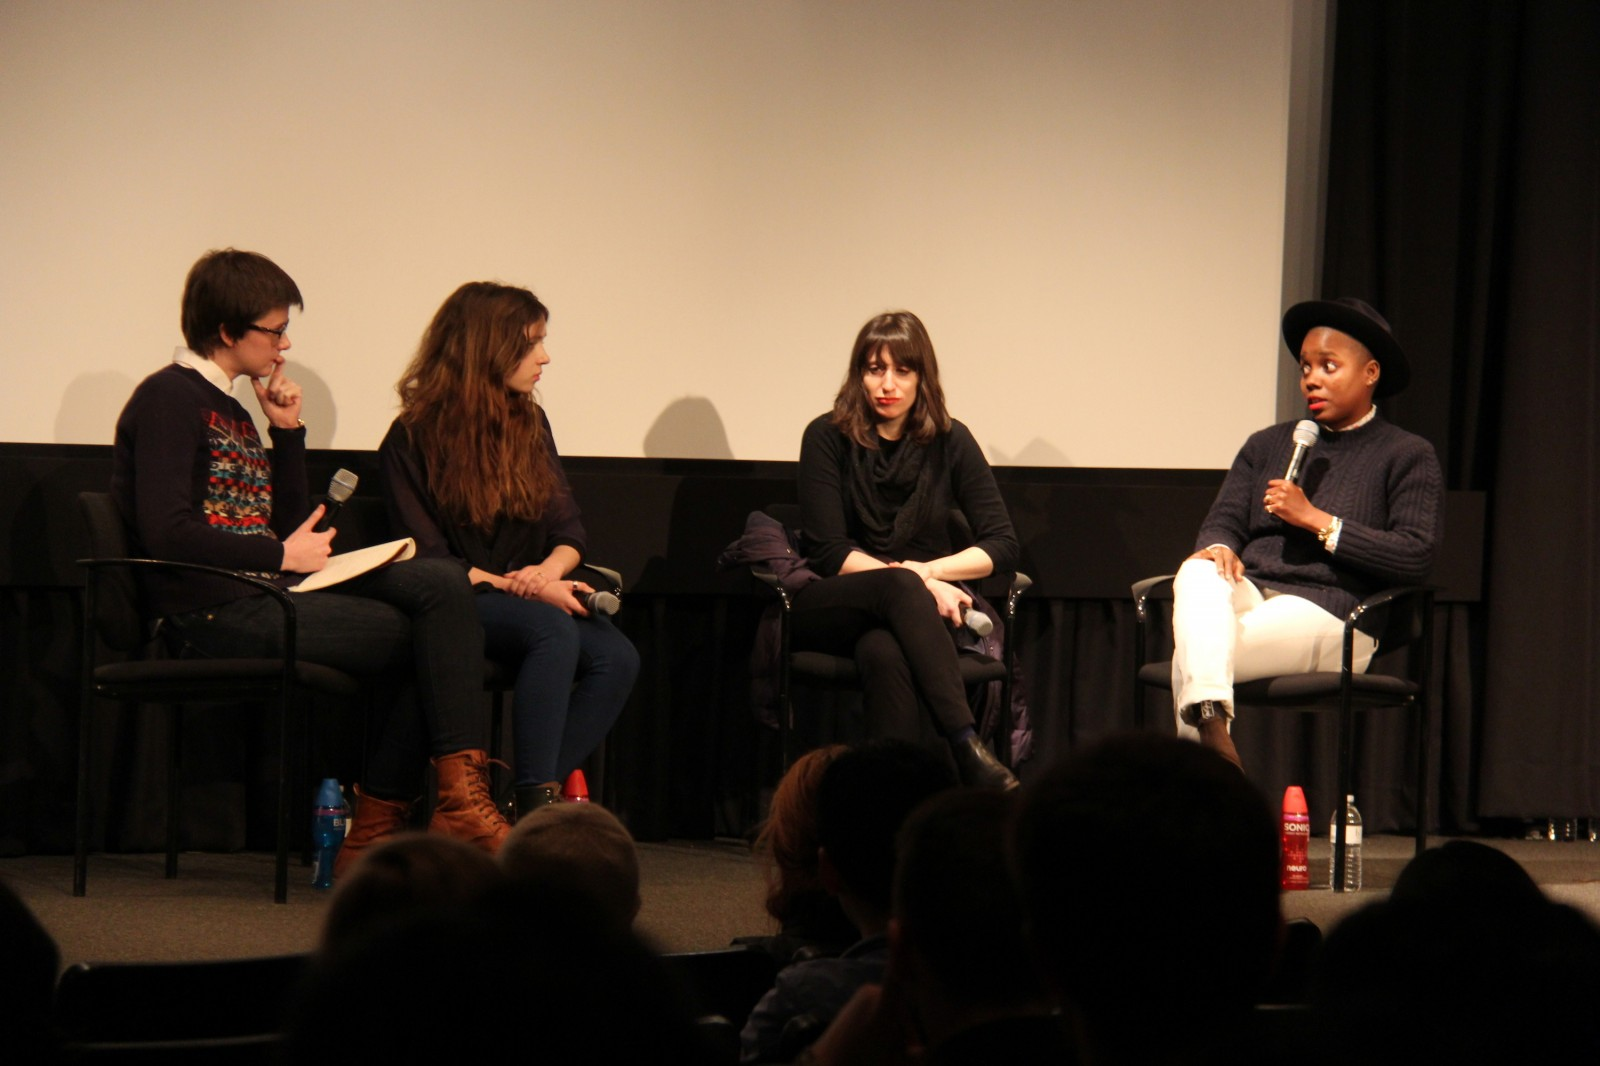 F2014_IndustryScreenings_Panelists21